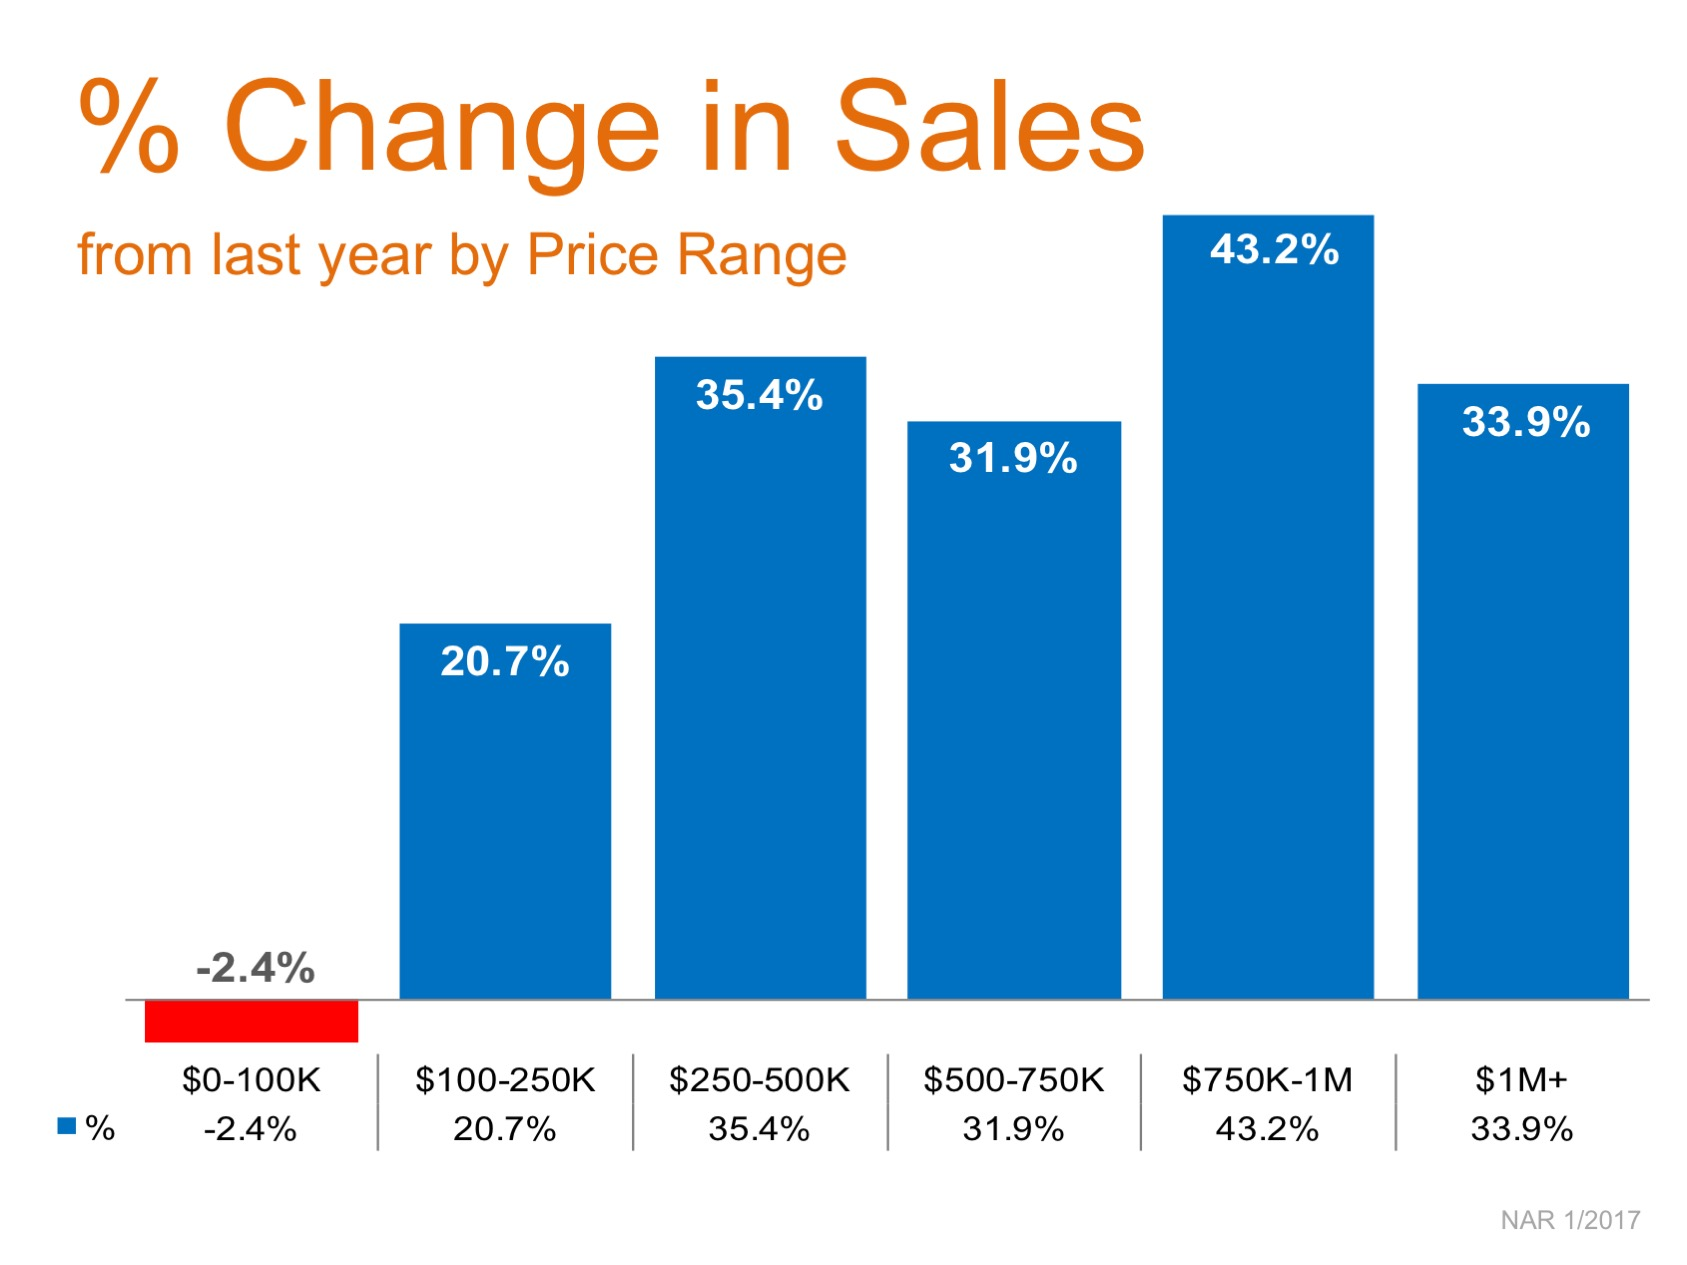 Year-Over-Year Sales Increases Reach Double Digits in 5 Price Categories   Simplifying The Market